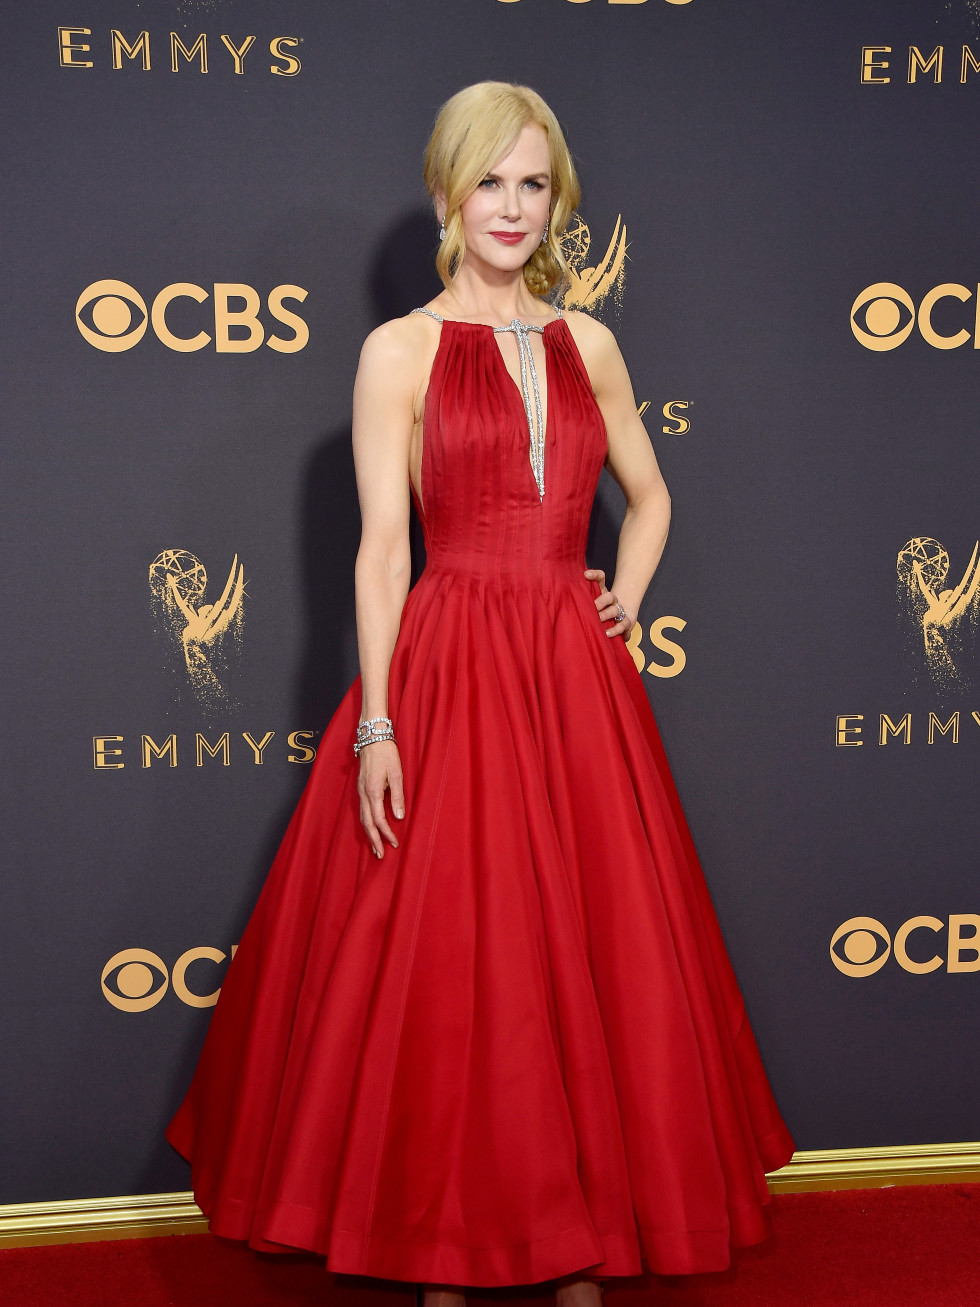 Nicole Kidman in Calvin Klein gown at Emmy 2017